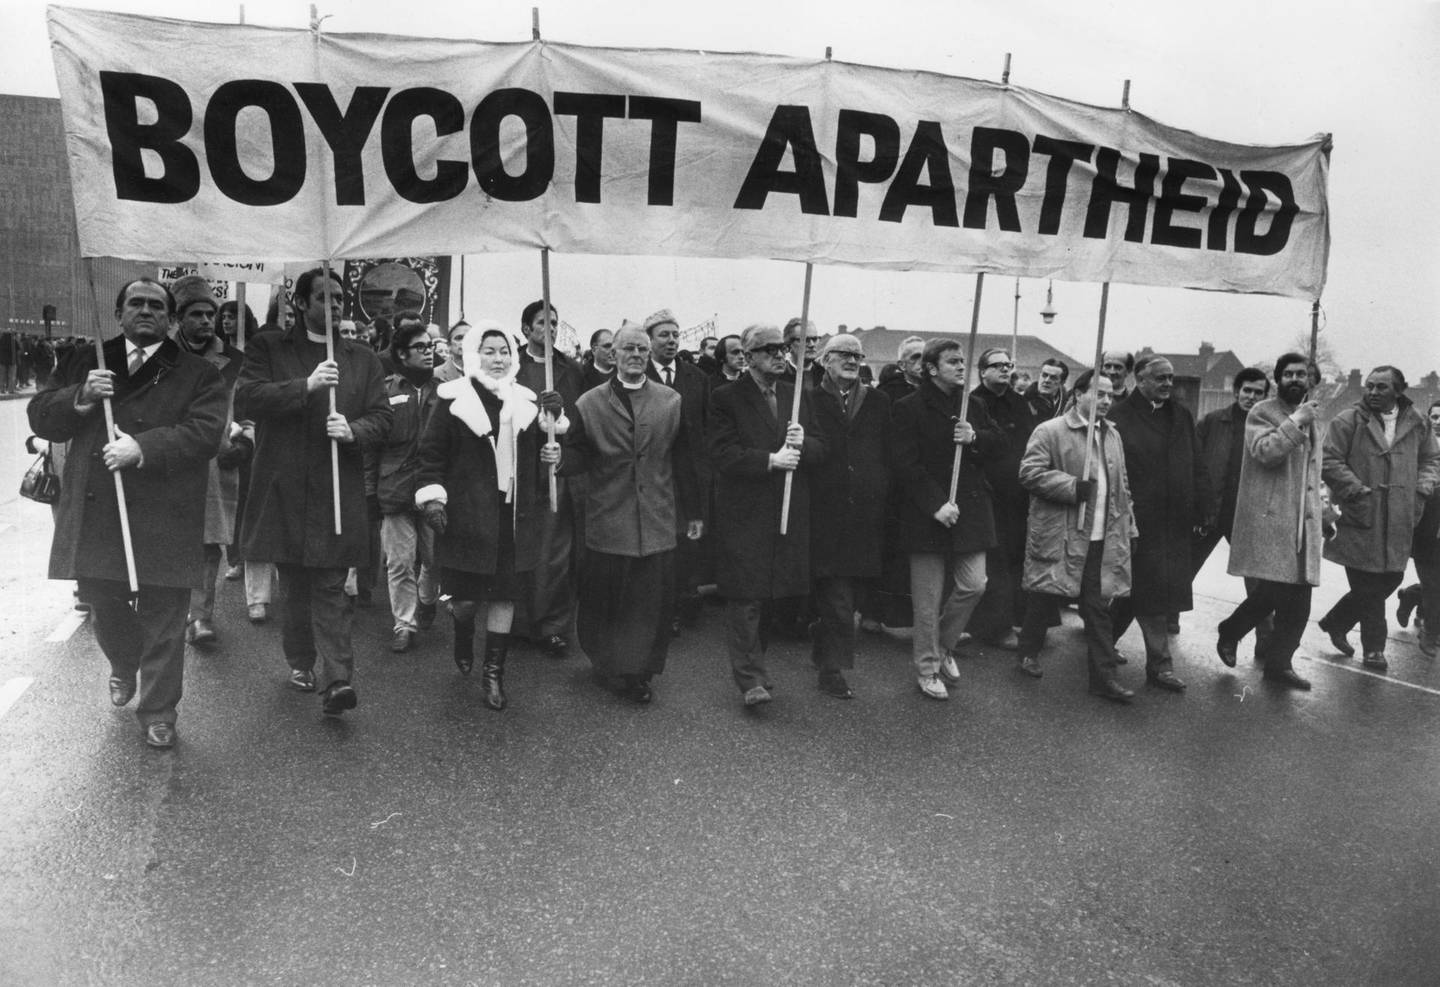 20th December 1969: Anti-apartheid marchers, including David Sheppard, Bishop of Woolwich (second left) and (from left) Anne Kerr MP, Methodist preacher and christian socialist Lord Donald Soper and Ian Mikardo MP, on their way to Twickenham rugby ground.   (Photo by Central Press/Getty Images)